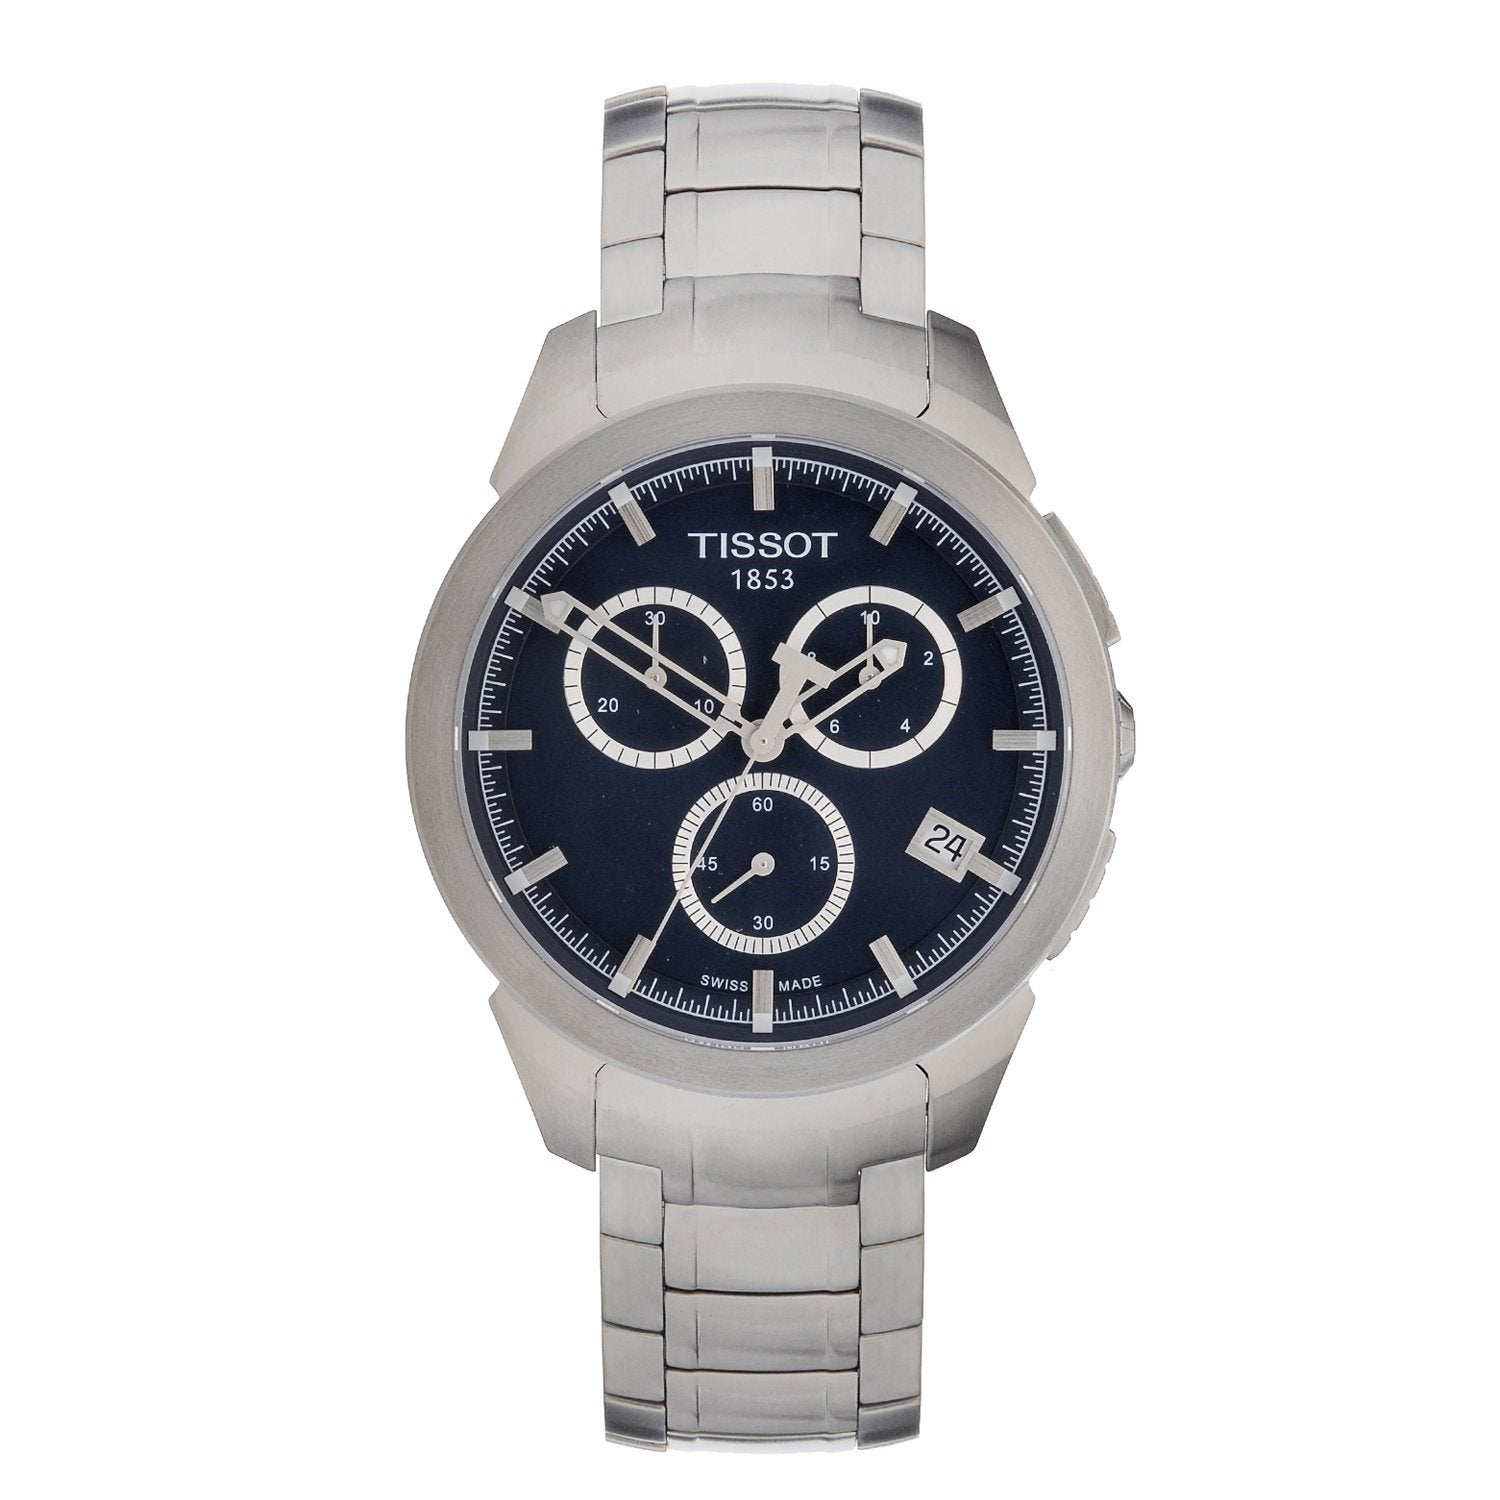 Tissot Men's Titanium Chronograph Watch (T0694174404100),...